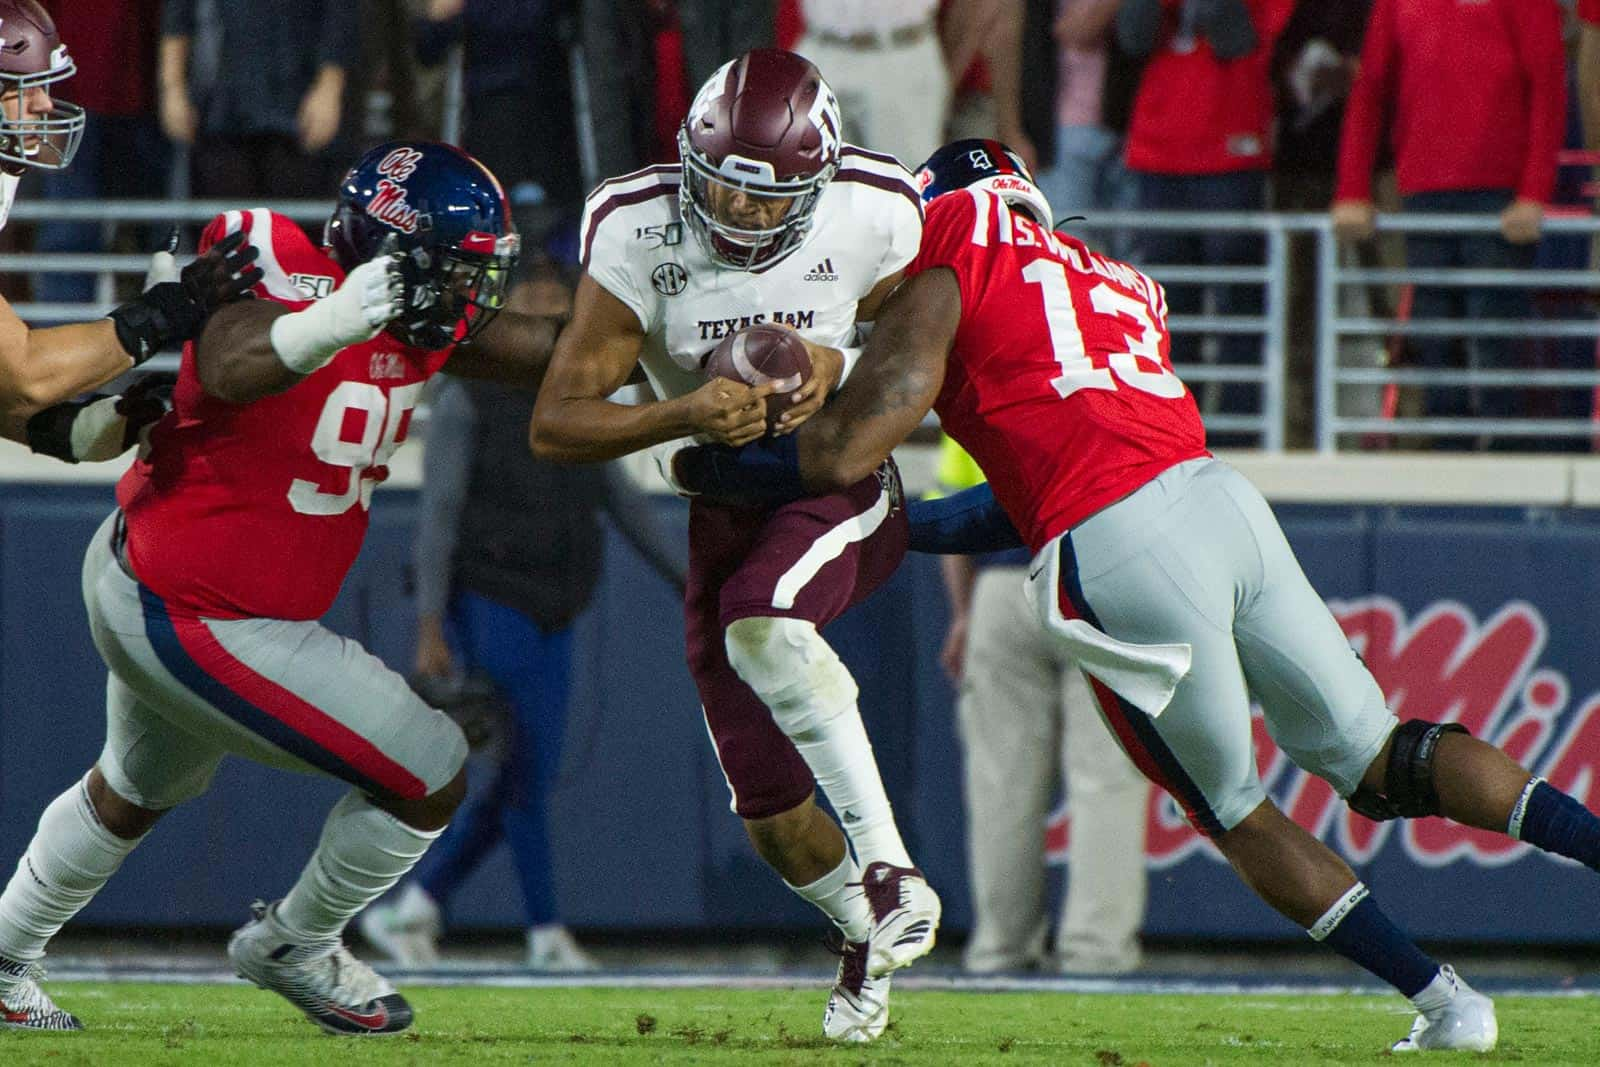 Texas A&M vs Ole Miss football game postponed over COVID-19 issues